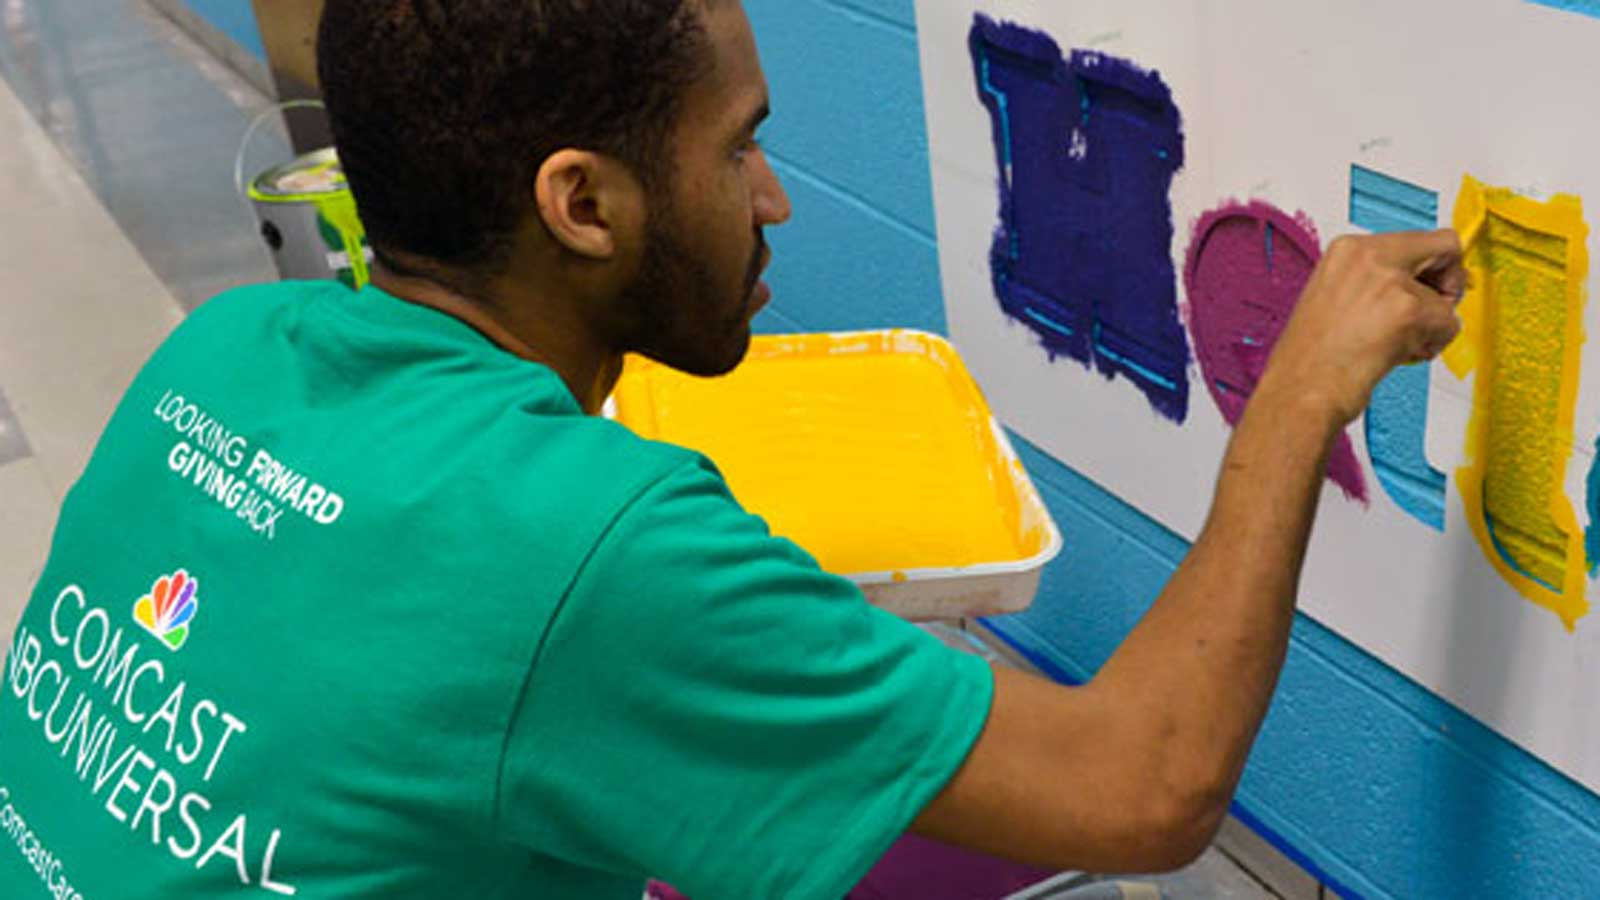 Comcast Cares Day volunteer painting mural